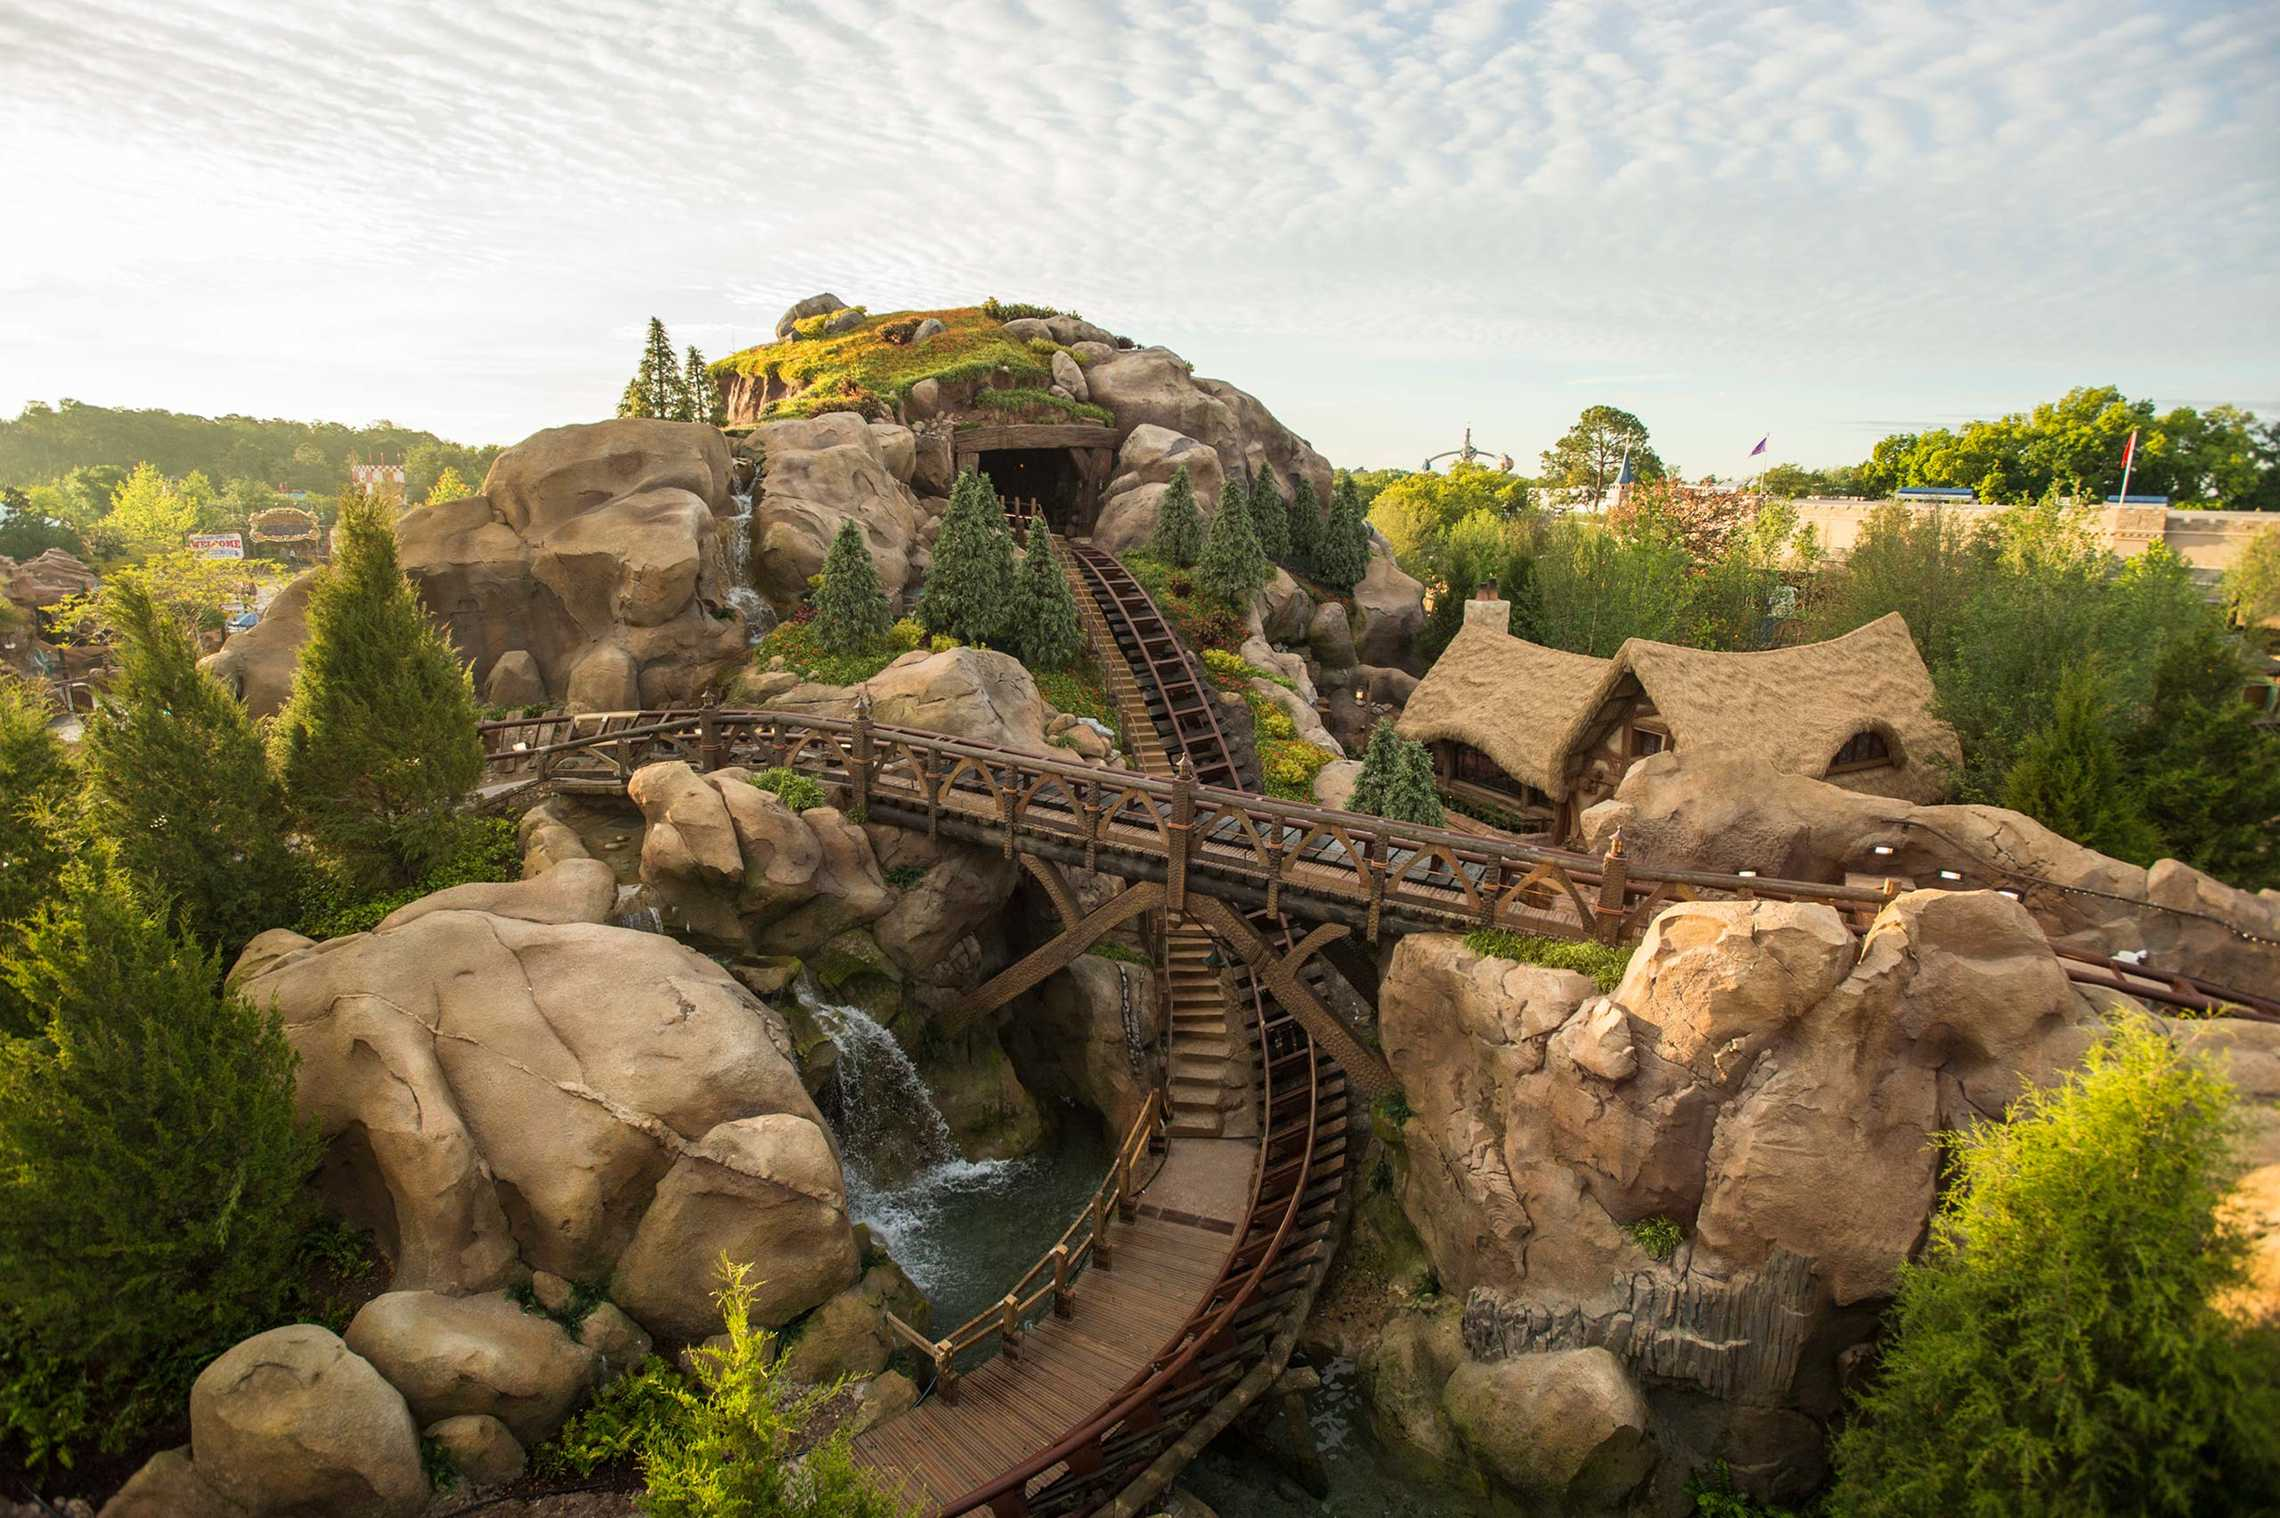 Overhead view of the Seven Dwarfs Mine Train coaster